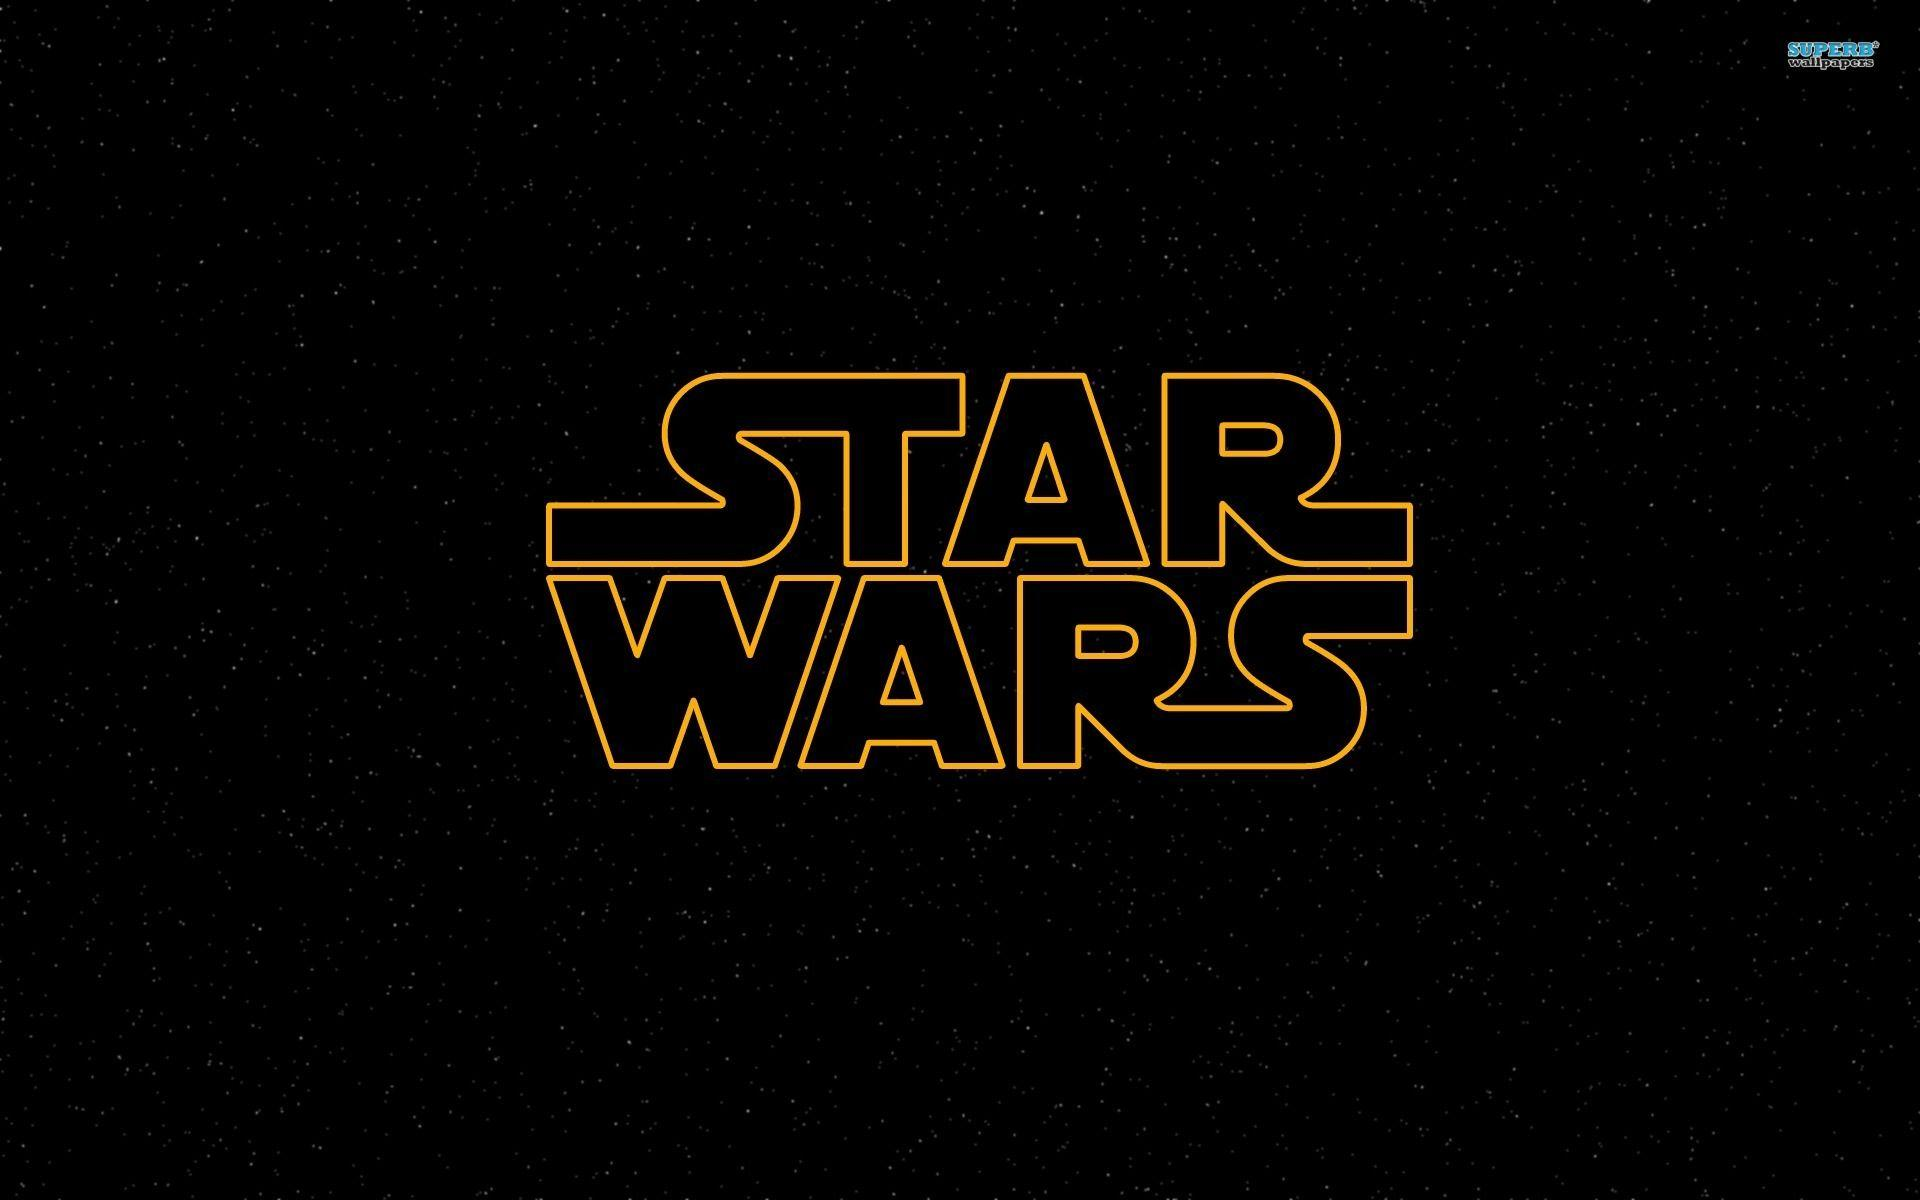 Star Wars Movie wallpaper - 855875